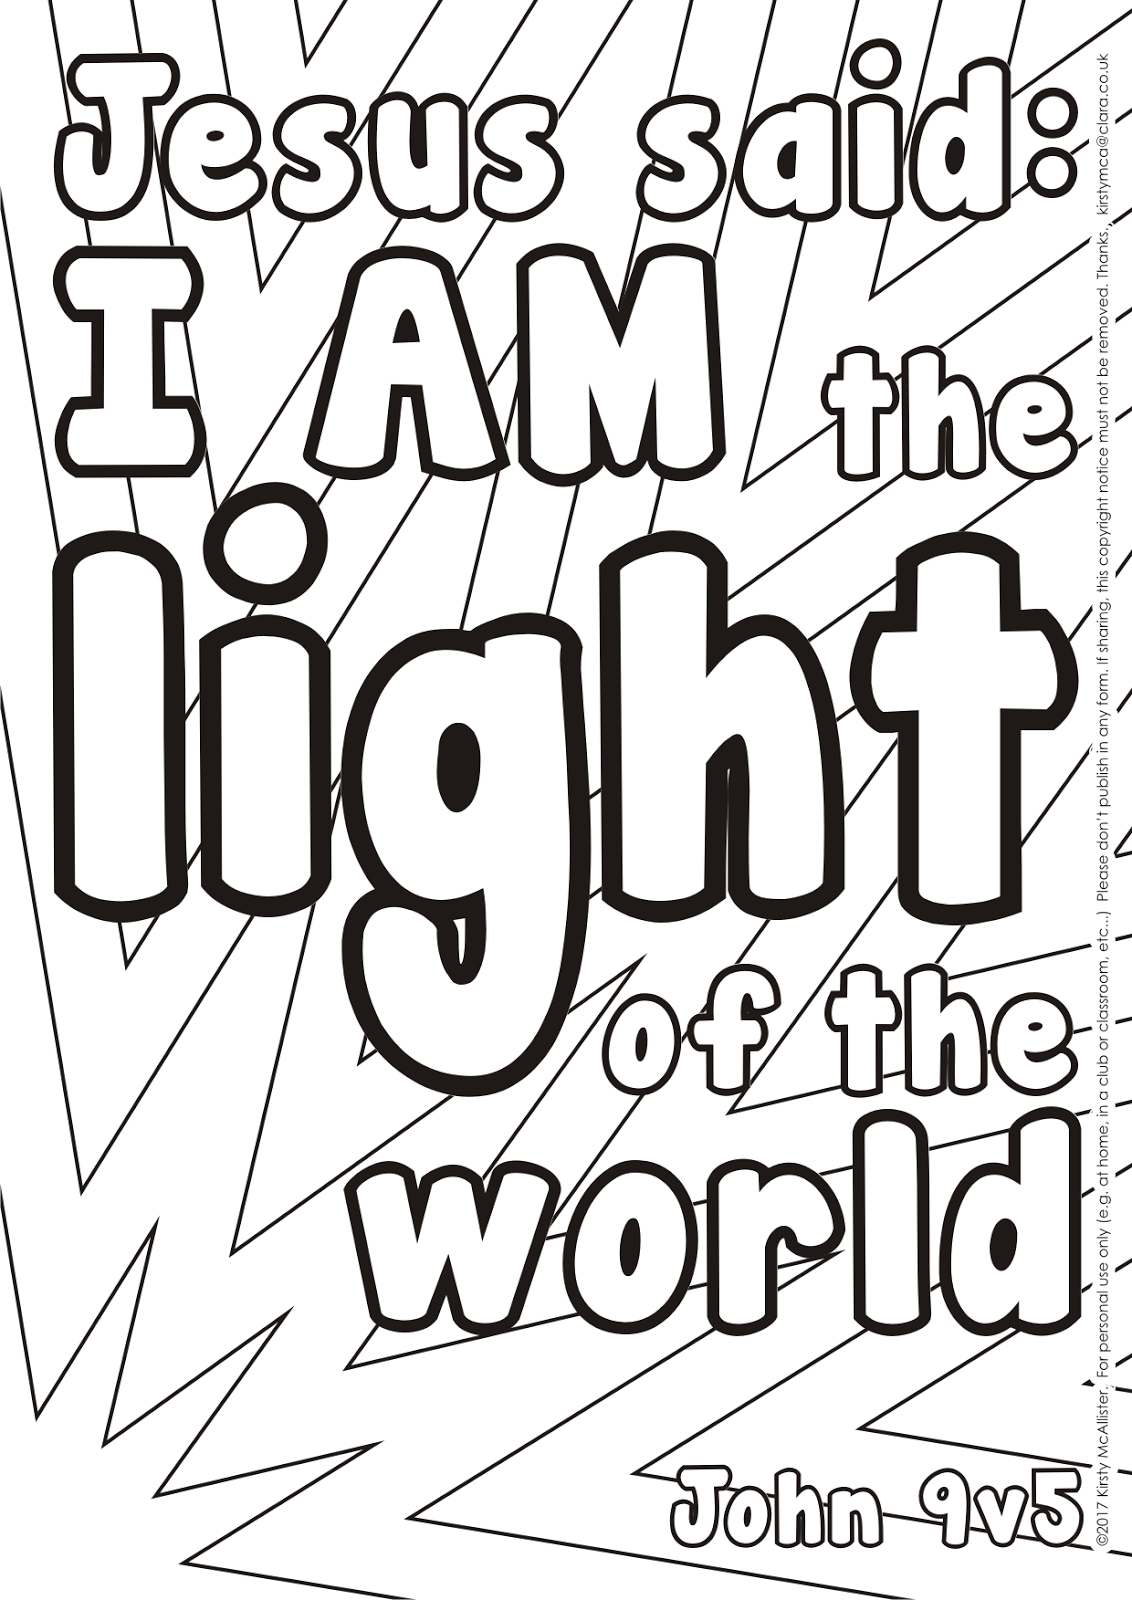 Let Your Light Shine Coloring Page Inspirational Pin By Highly Favored On 2 Coloring Pages Printable Coloring Pages Quote Coloring Pages